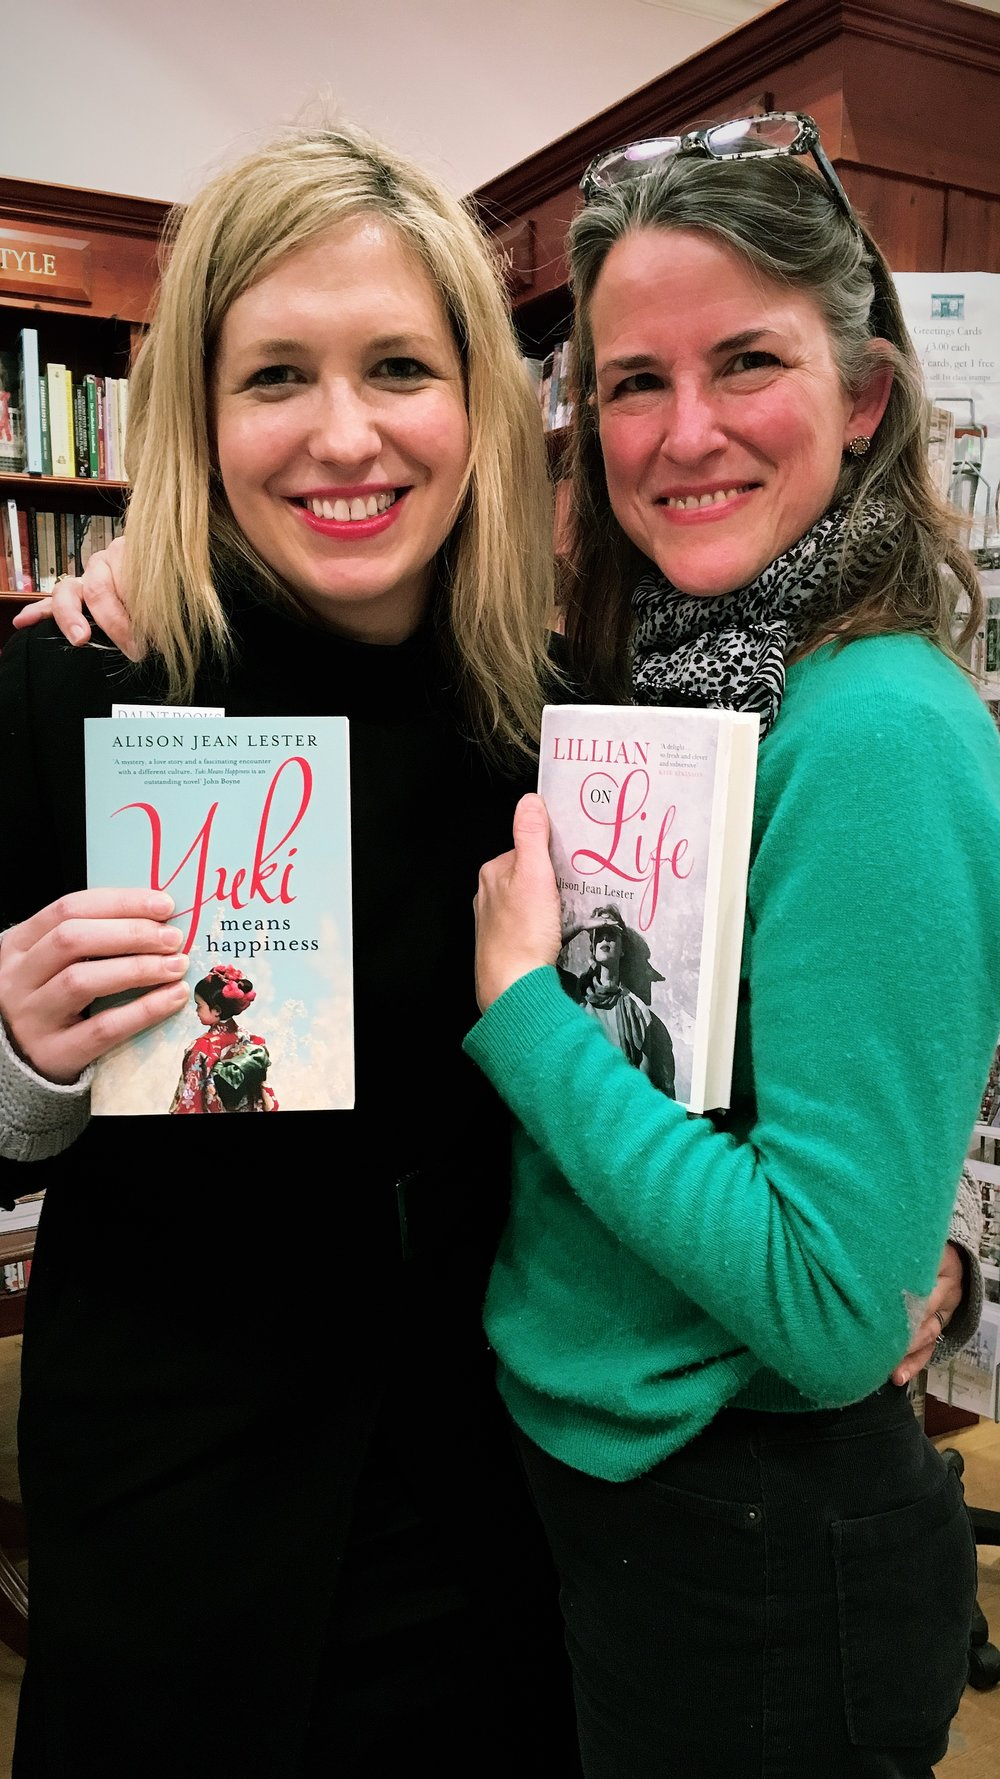 Me and Alison, with her two brilliant novels.